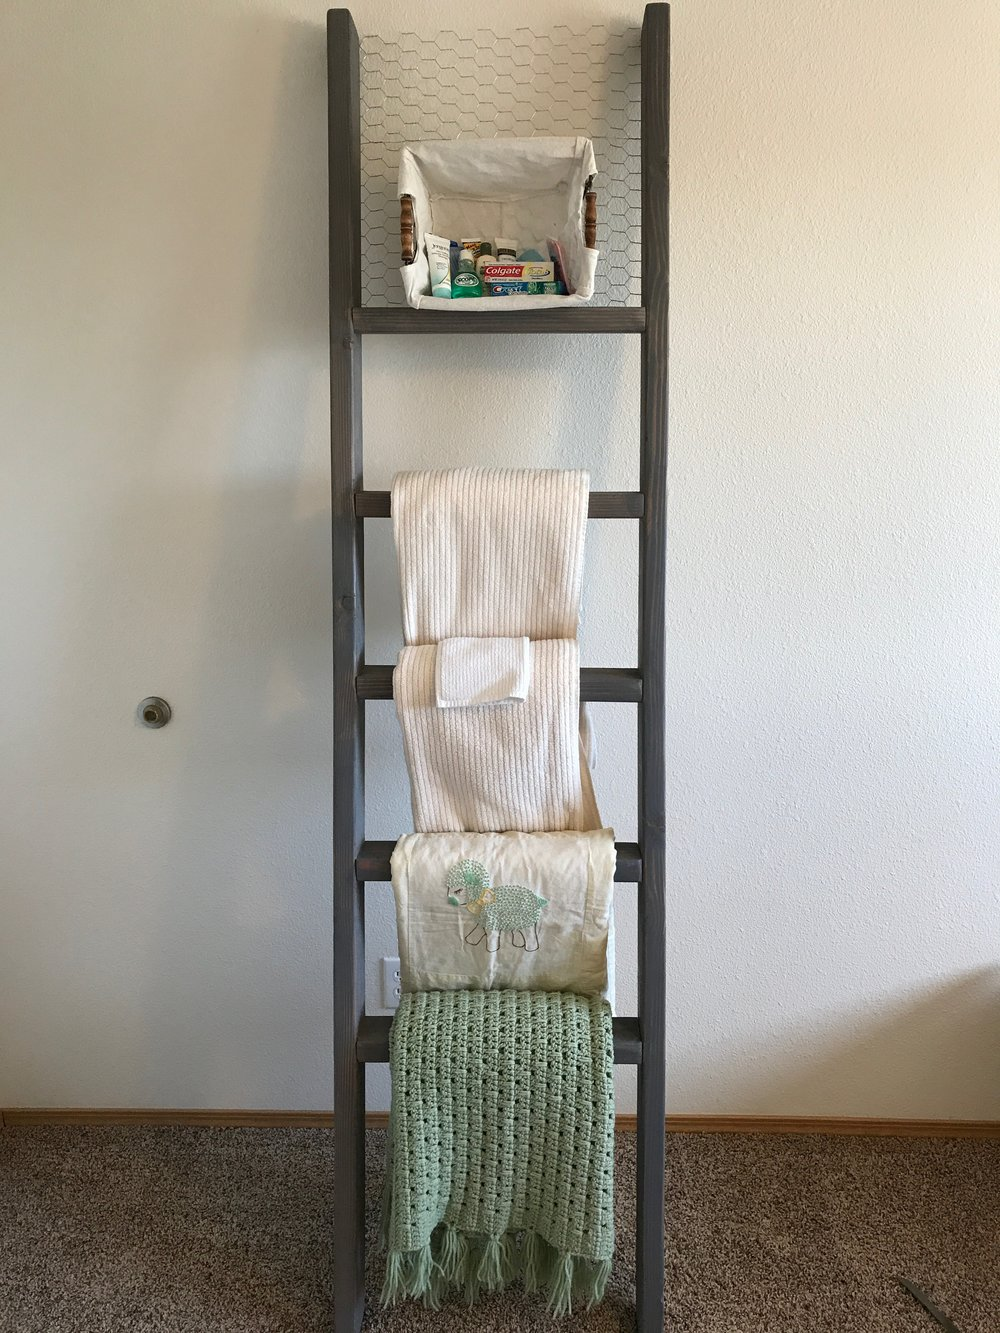 - I decided that I wanted to have a basket on the top to put travel sized bathroom essentials since it was for the guest room. We stapled chicken wire to the top and i was able to hang the basket from the wire. Later on down the road I will be clothes pinning black and white photos above the basket. All in all I enjoyed my first wood working project and look forward to more in the future! Let me know if you great one as well and how it turned out!